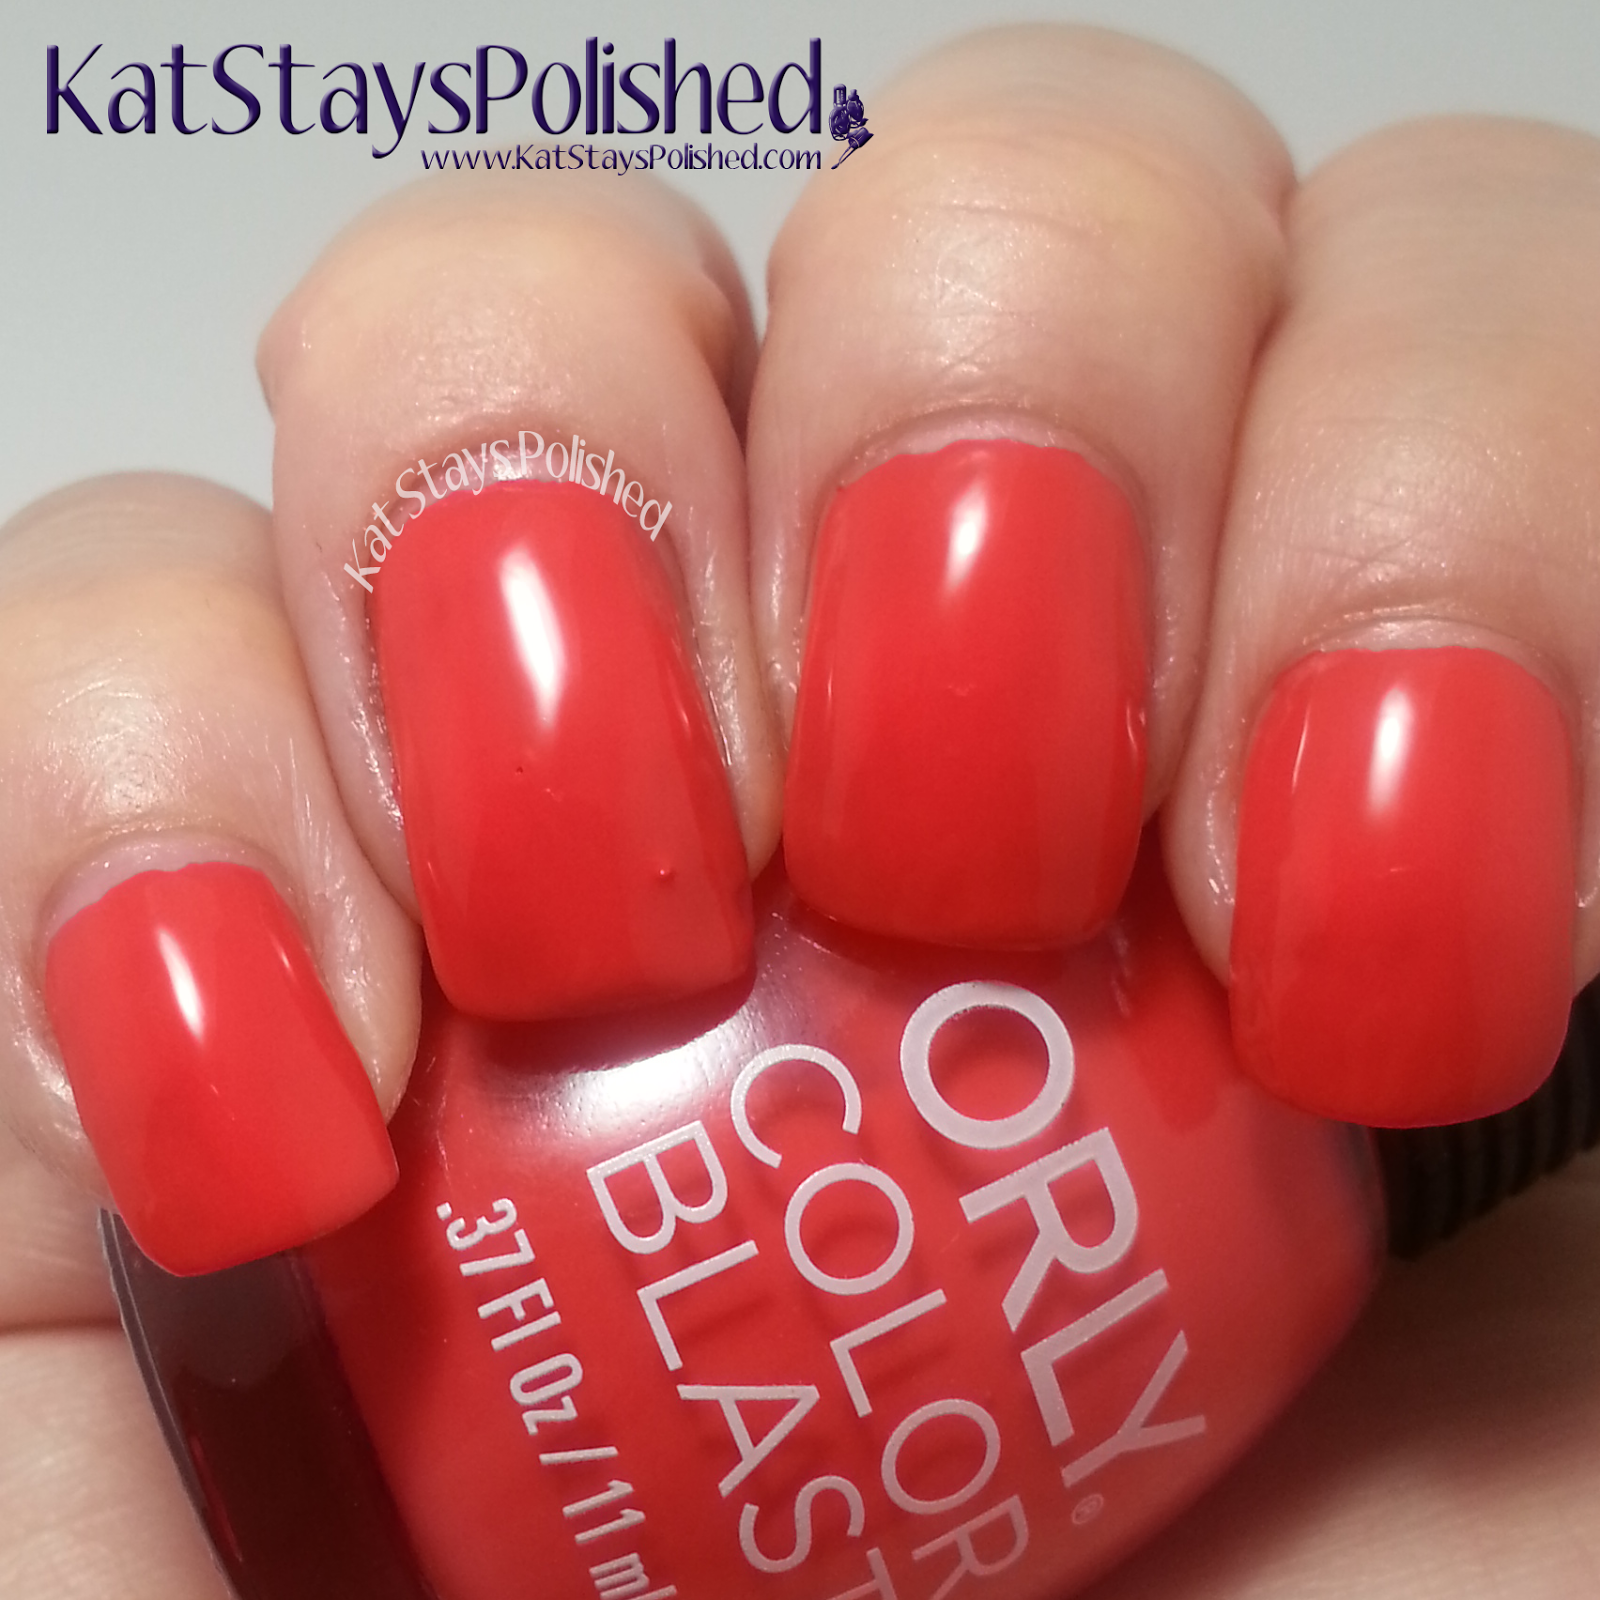 Orly Color Blast - Disney's Frozen Elsa Collection - Warm Hugs | Kat Stays Polished